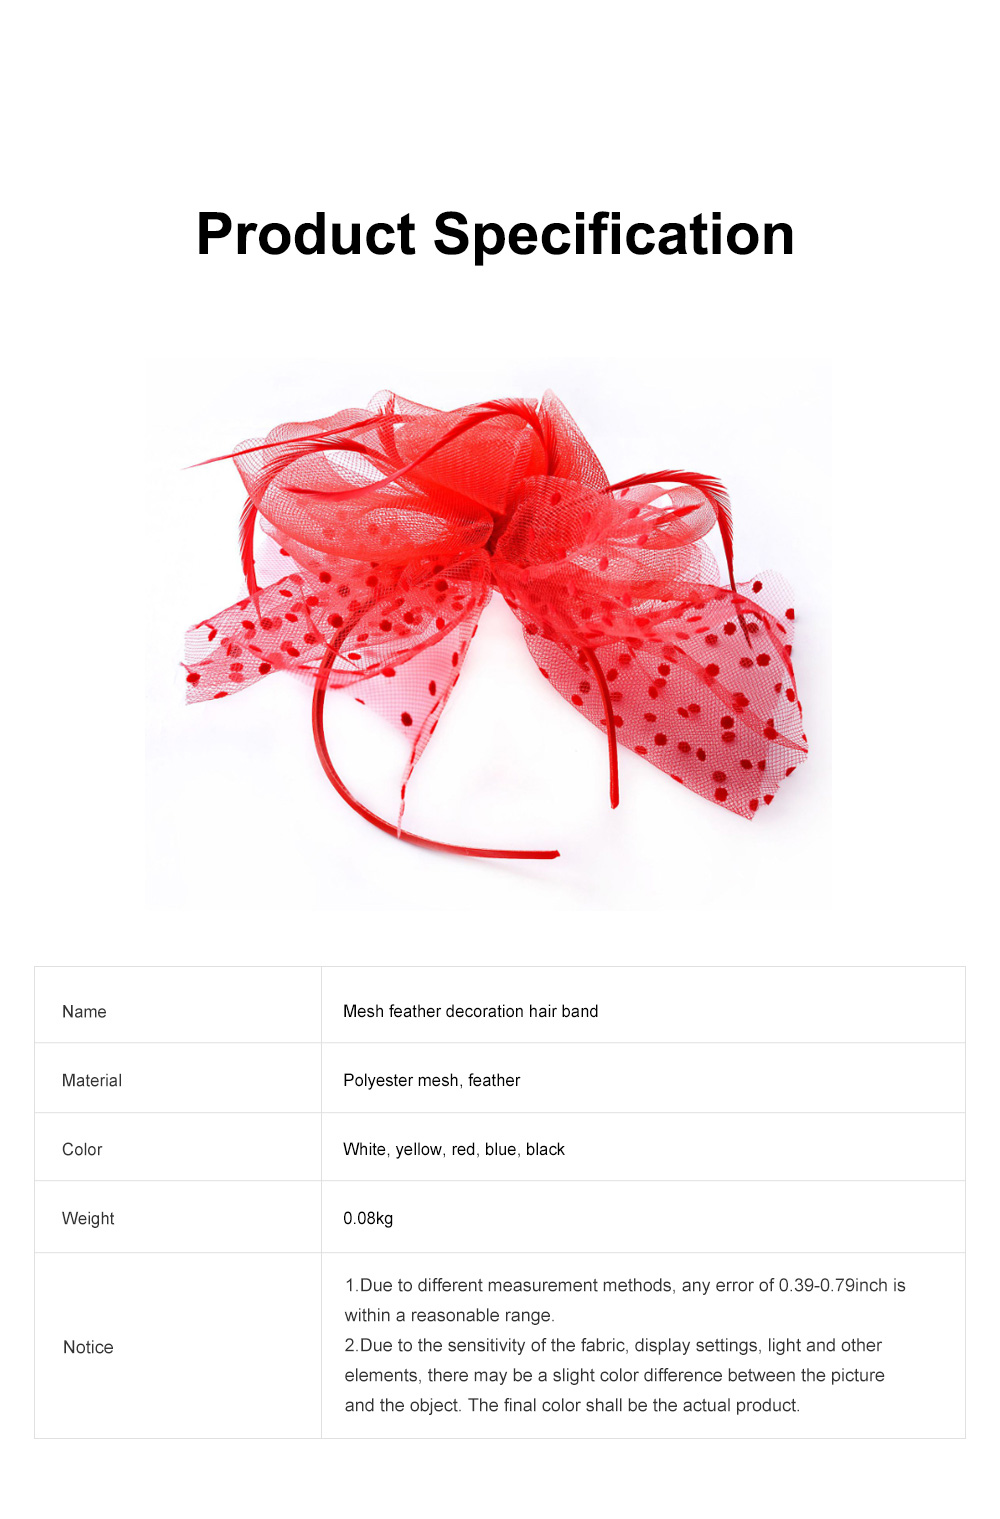 Fancy Flower Model Mesh Feather Decoration Hair Band, Delicate Evening Party Ladies Hair Decoration Ornament 6